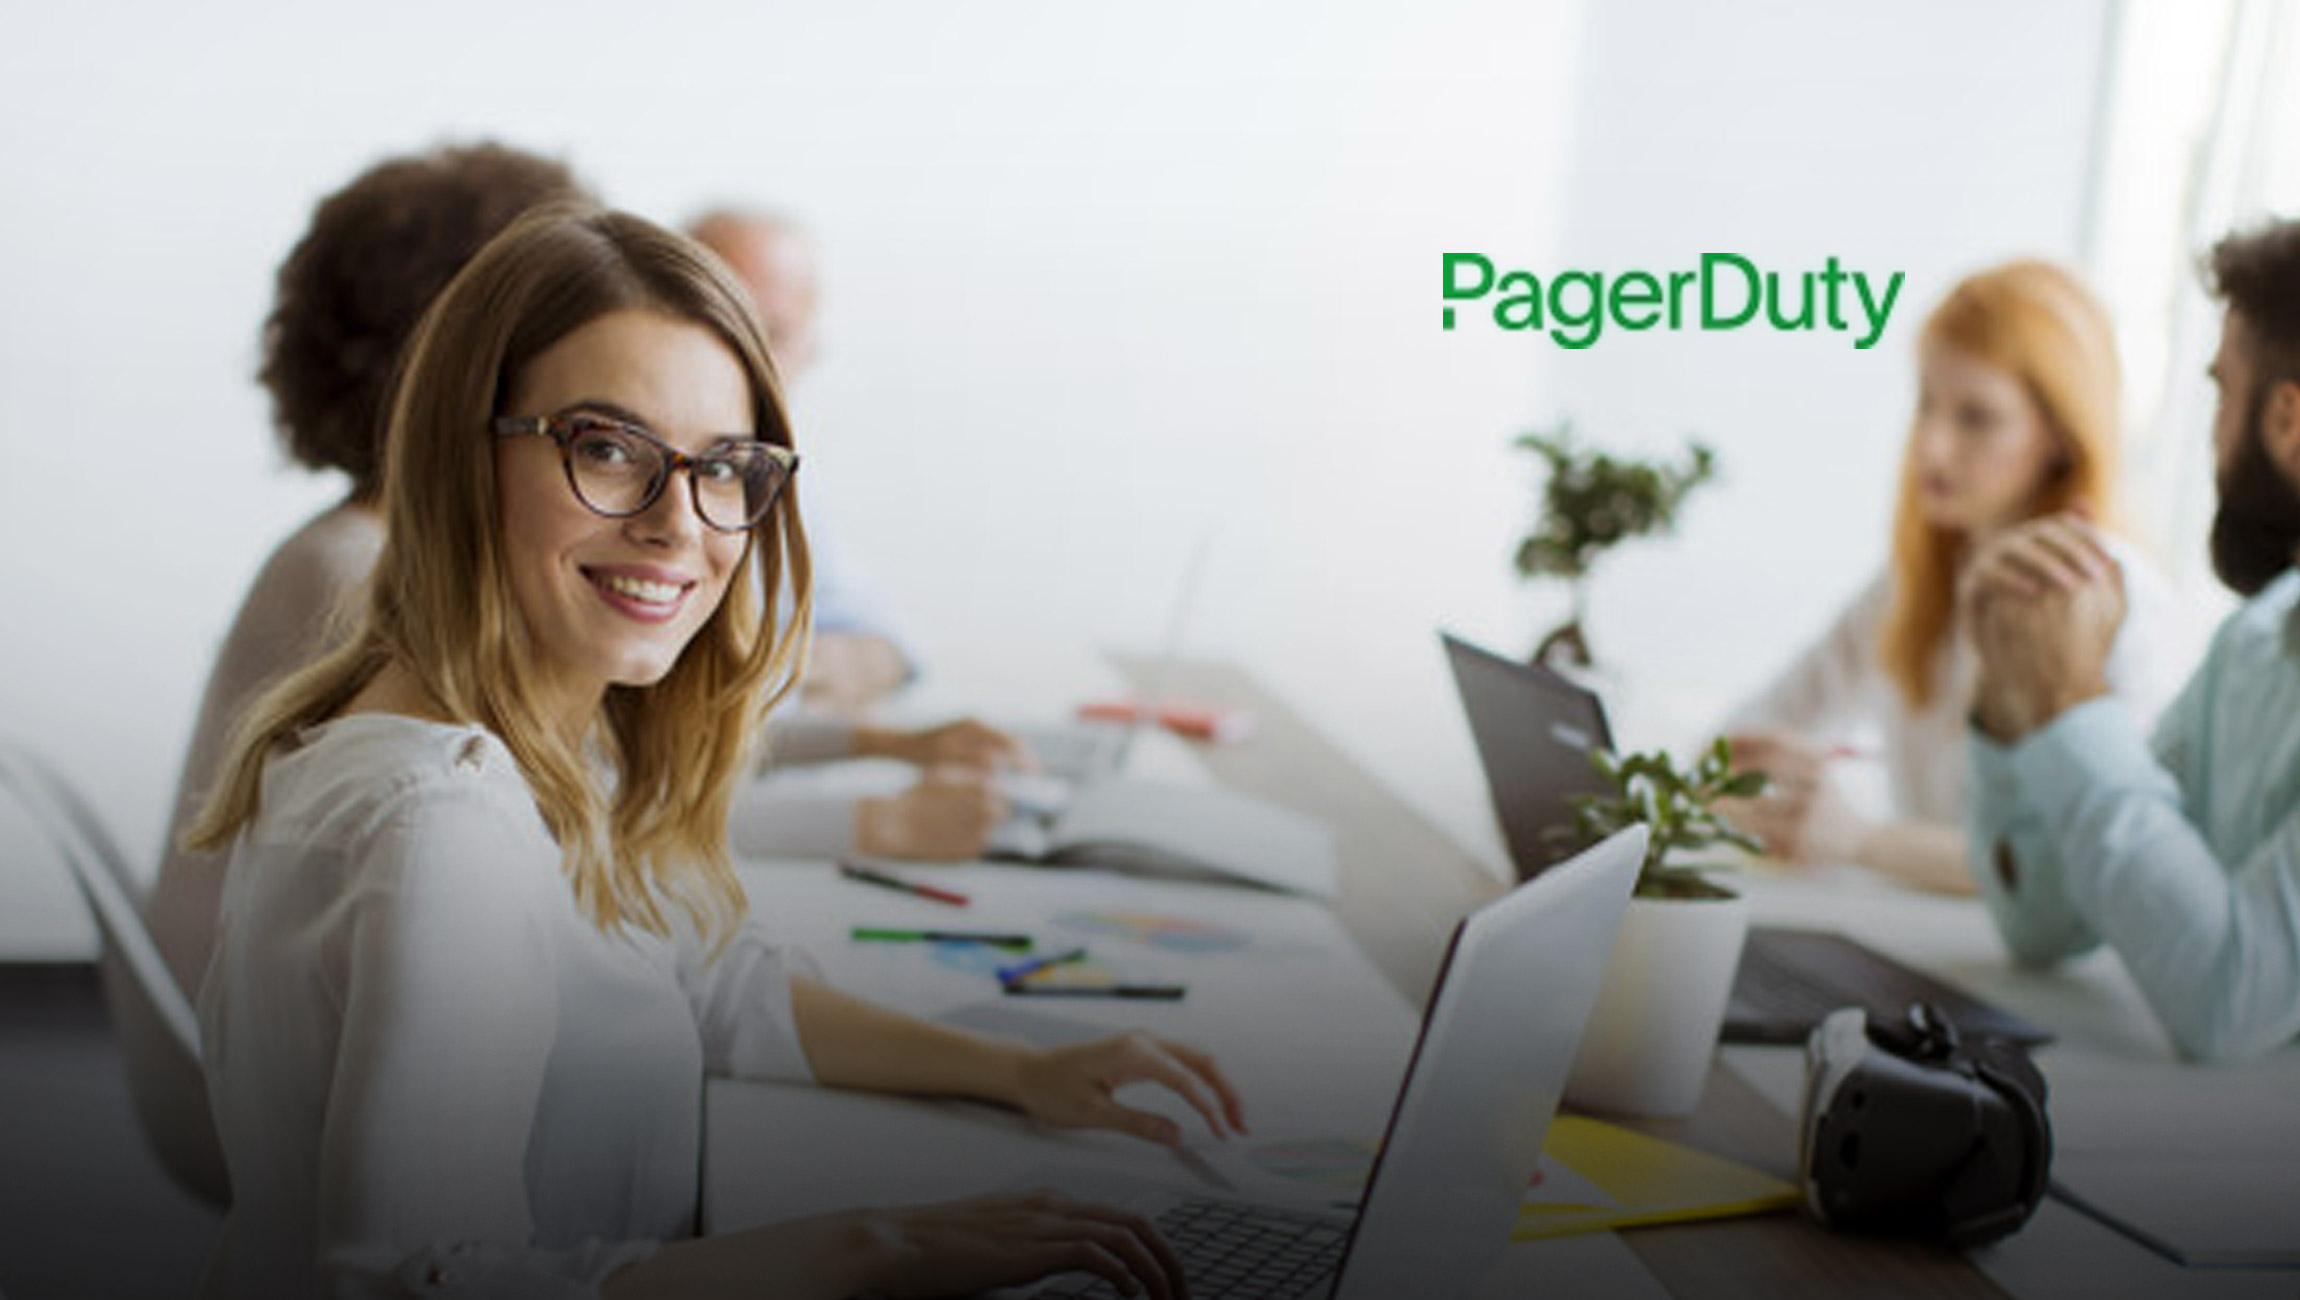 New PagerDuty Capabilities Enable Organizations to Embrace Modern Approach to Digital Operations